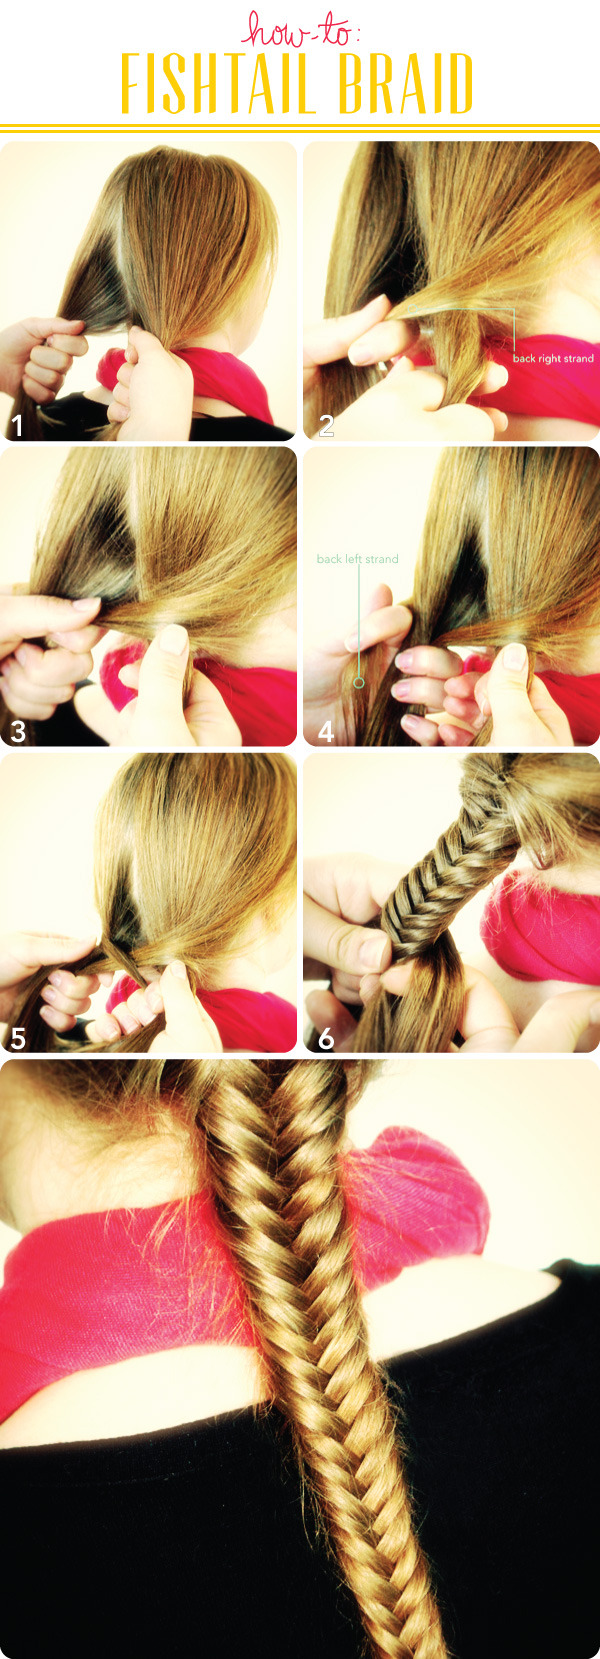 Fishtail Braid Tutorial and Step-by-Step Braid Instructions